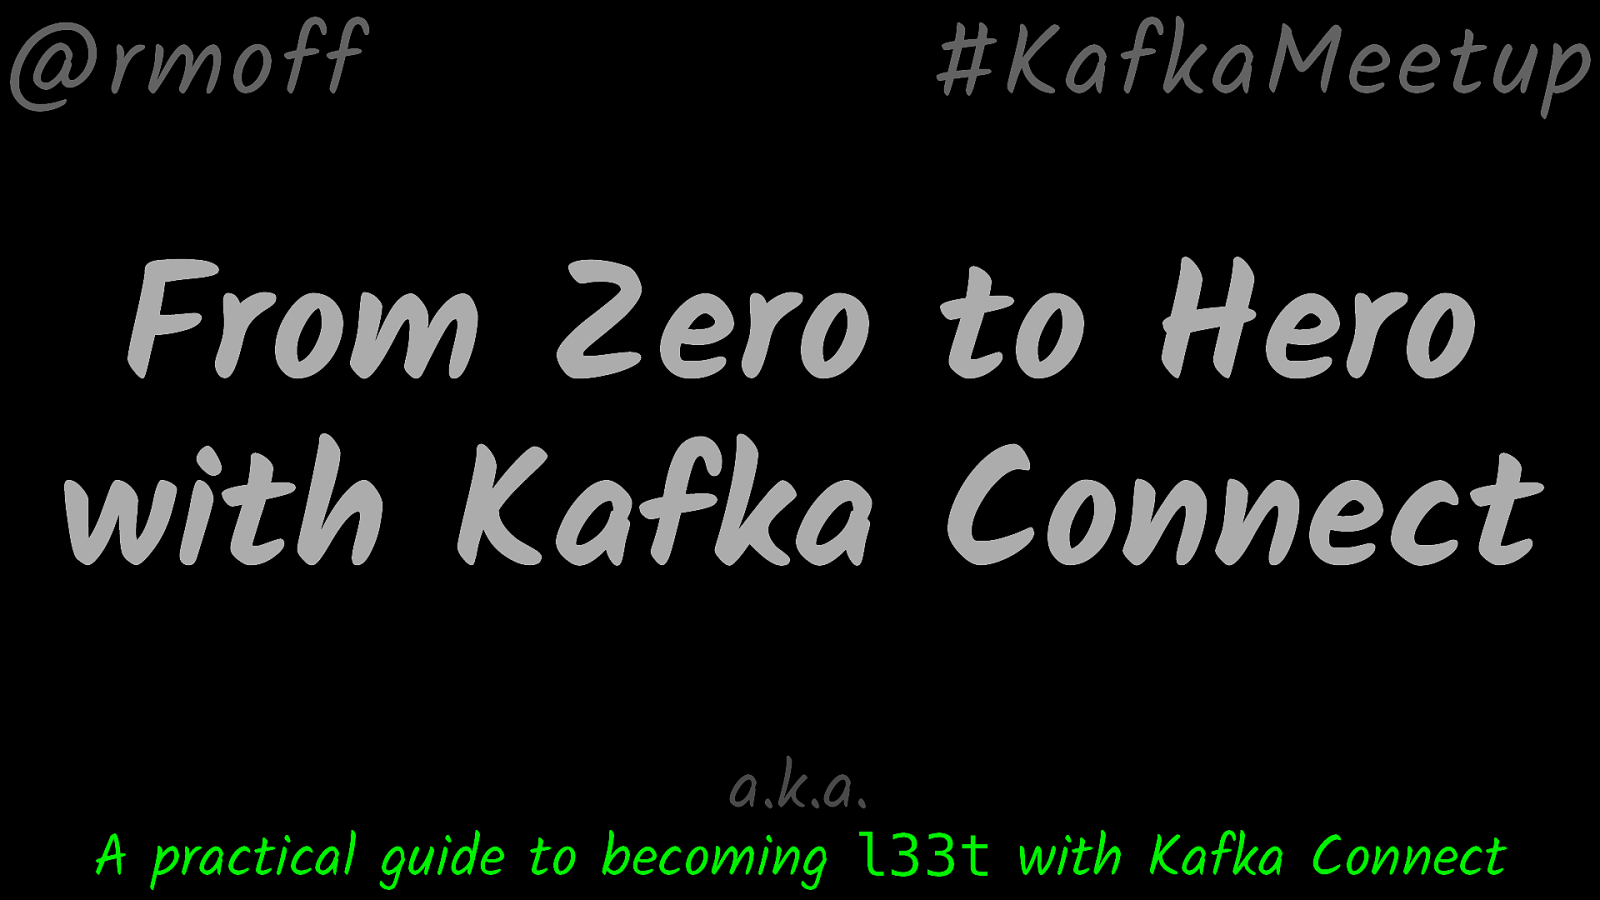 From Zero to Hero with Kafka Connect by Robin Moffatt